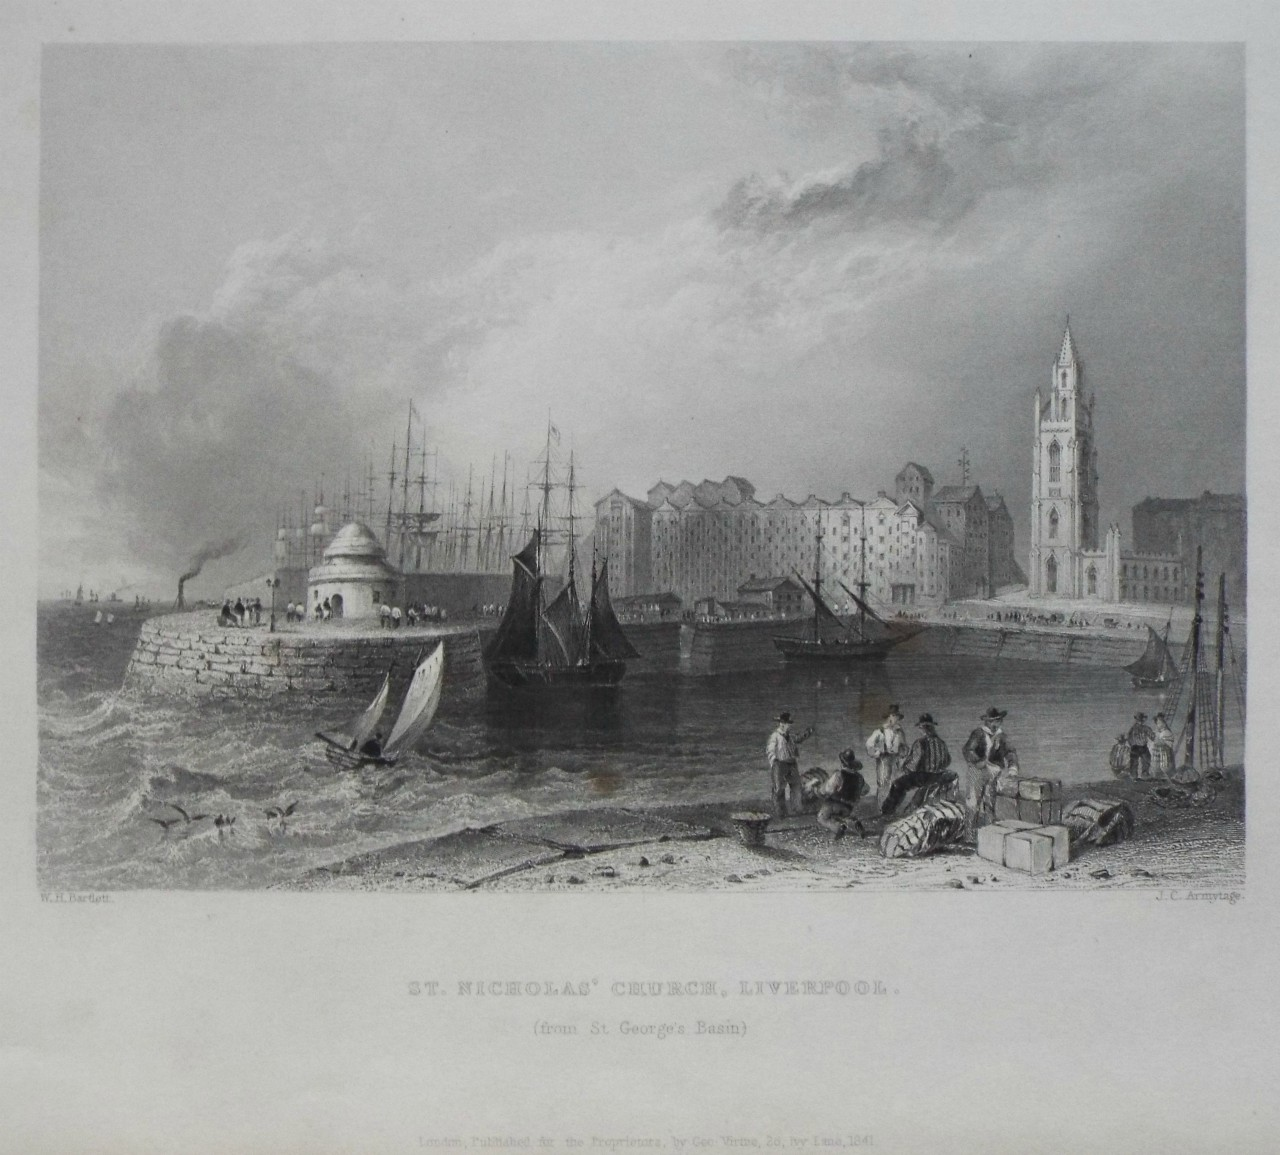 Print - St. Nicholas' Church, Liverpool. (from St. George's Basin) - Armytage